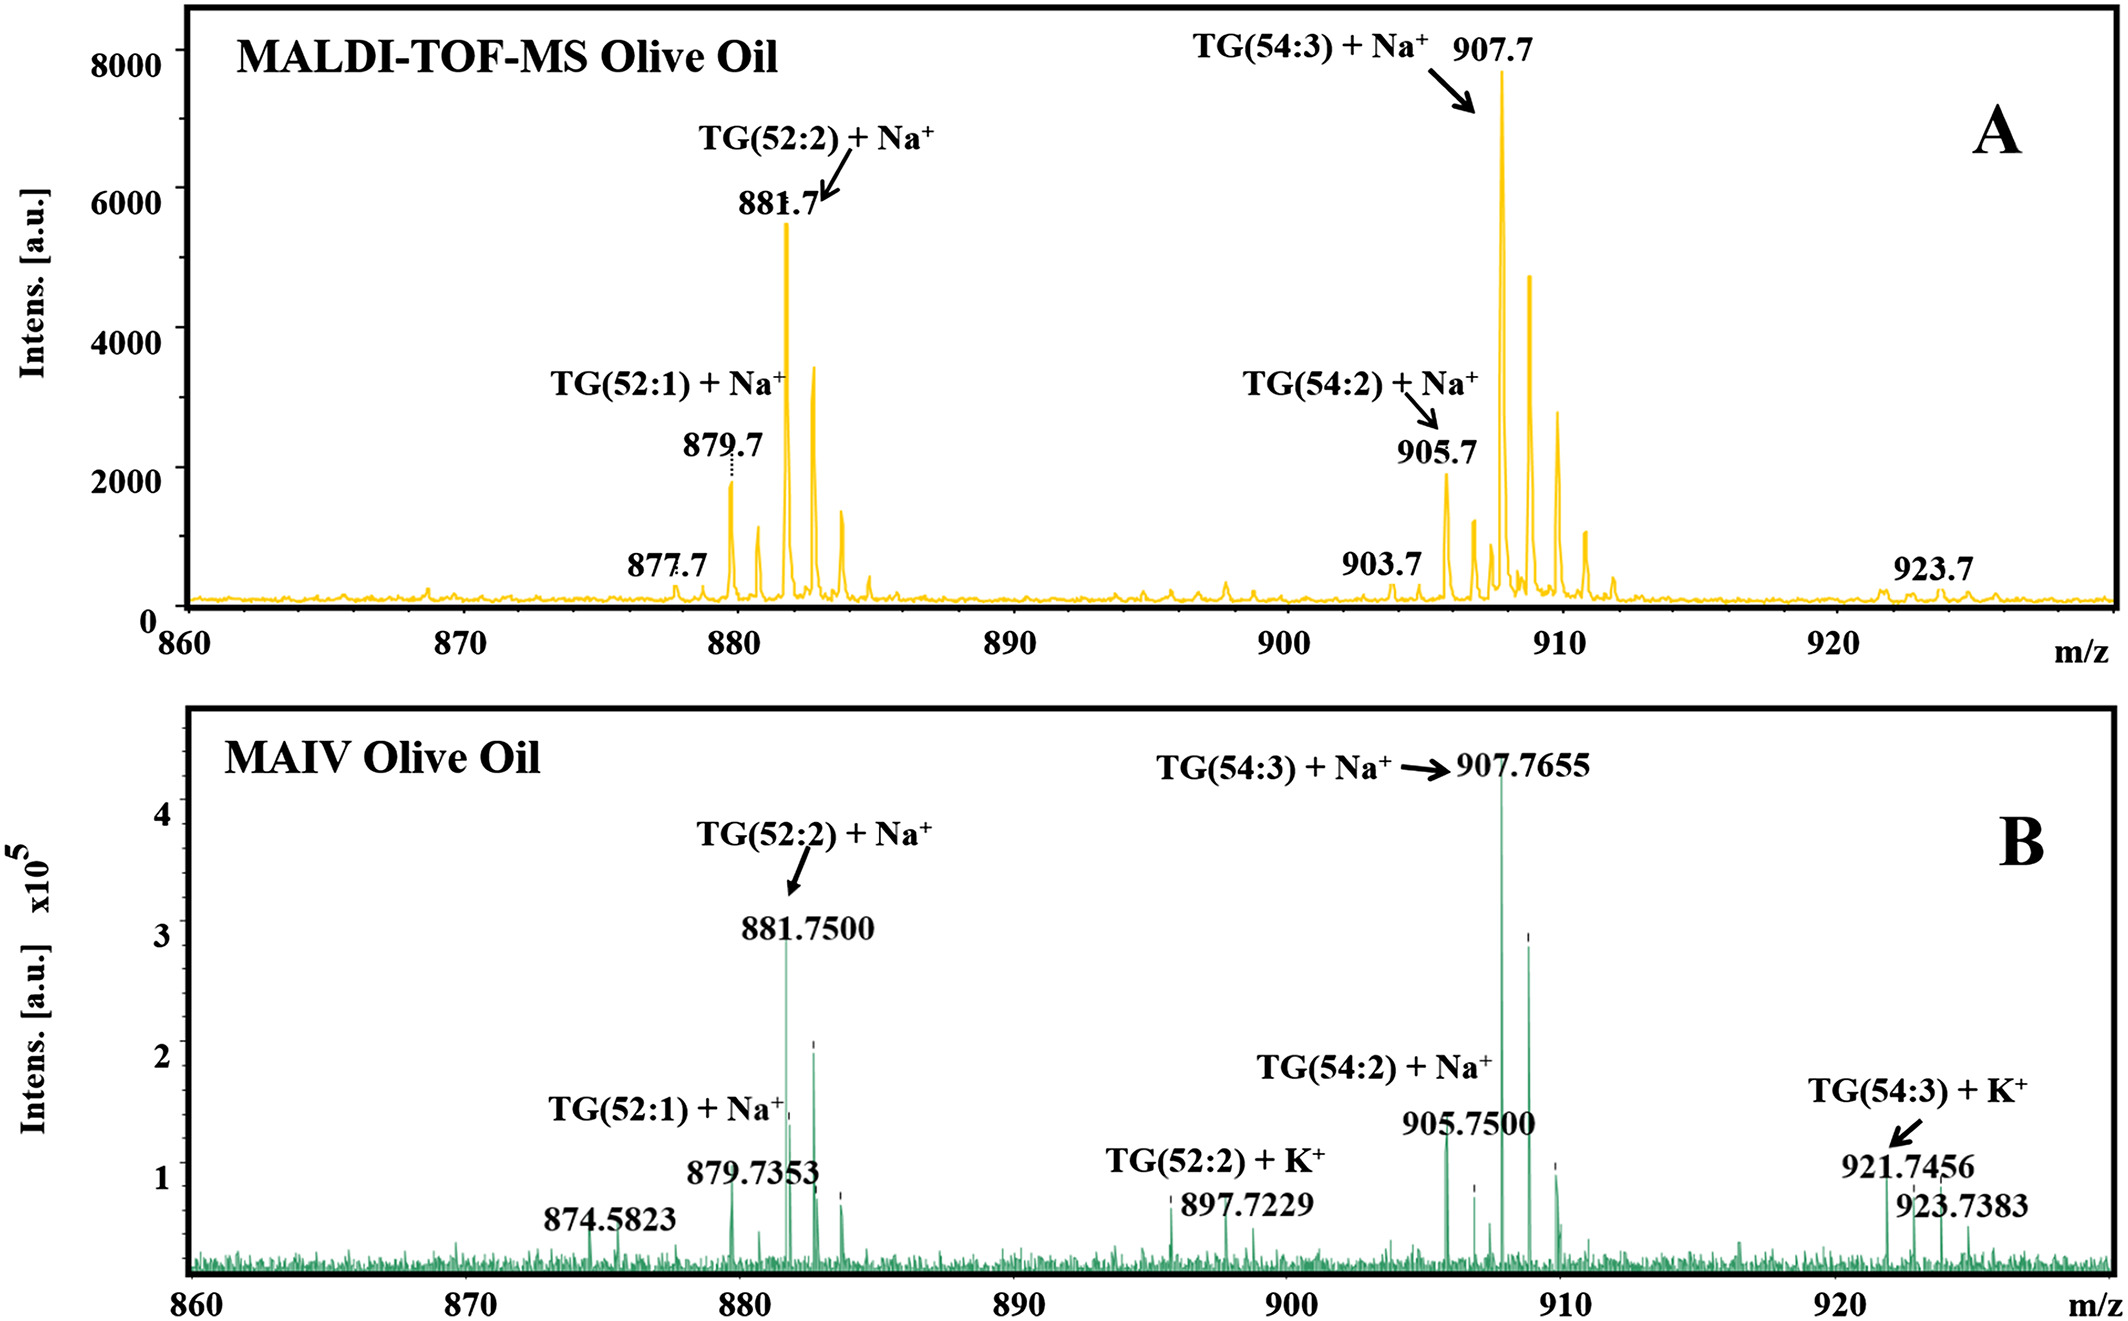 Figure 1. MALDI‐TOF (top, A) and MAI (bottom, B) mass spectra for commercial olive oil. In the spectra TG stands for triacylglycerol. For m/z 907 TG (54:3), 54 represents the number of carbons and 3 represents the carbon double bond numbers